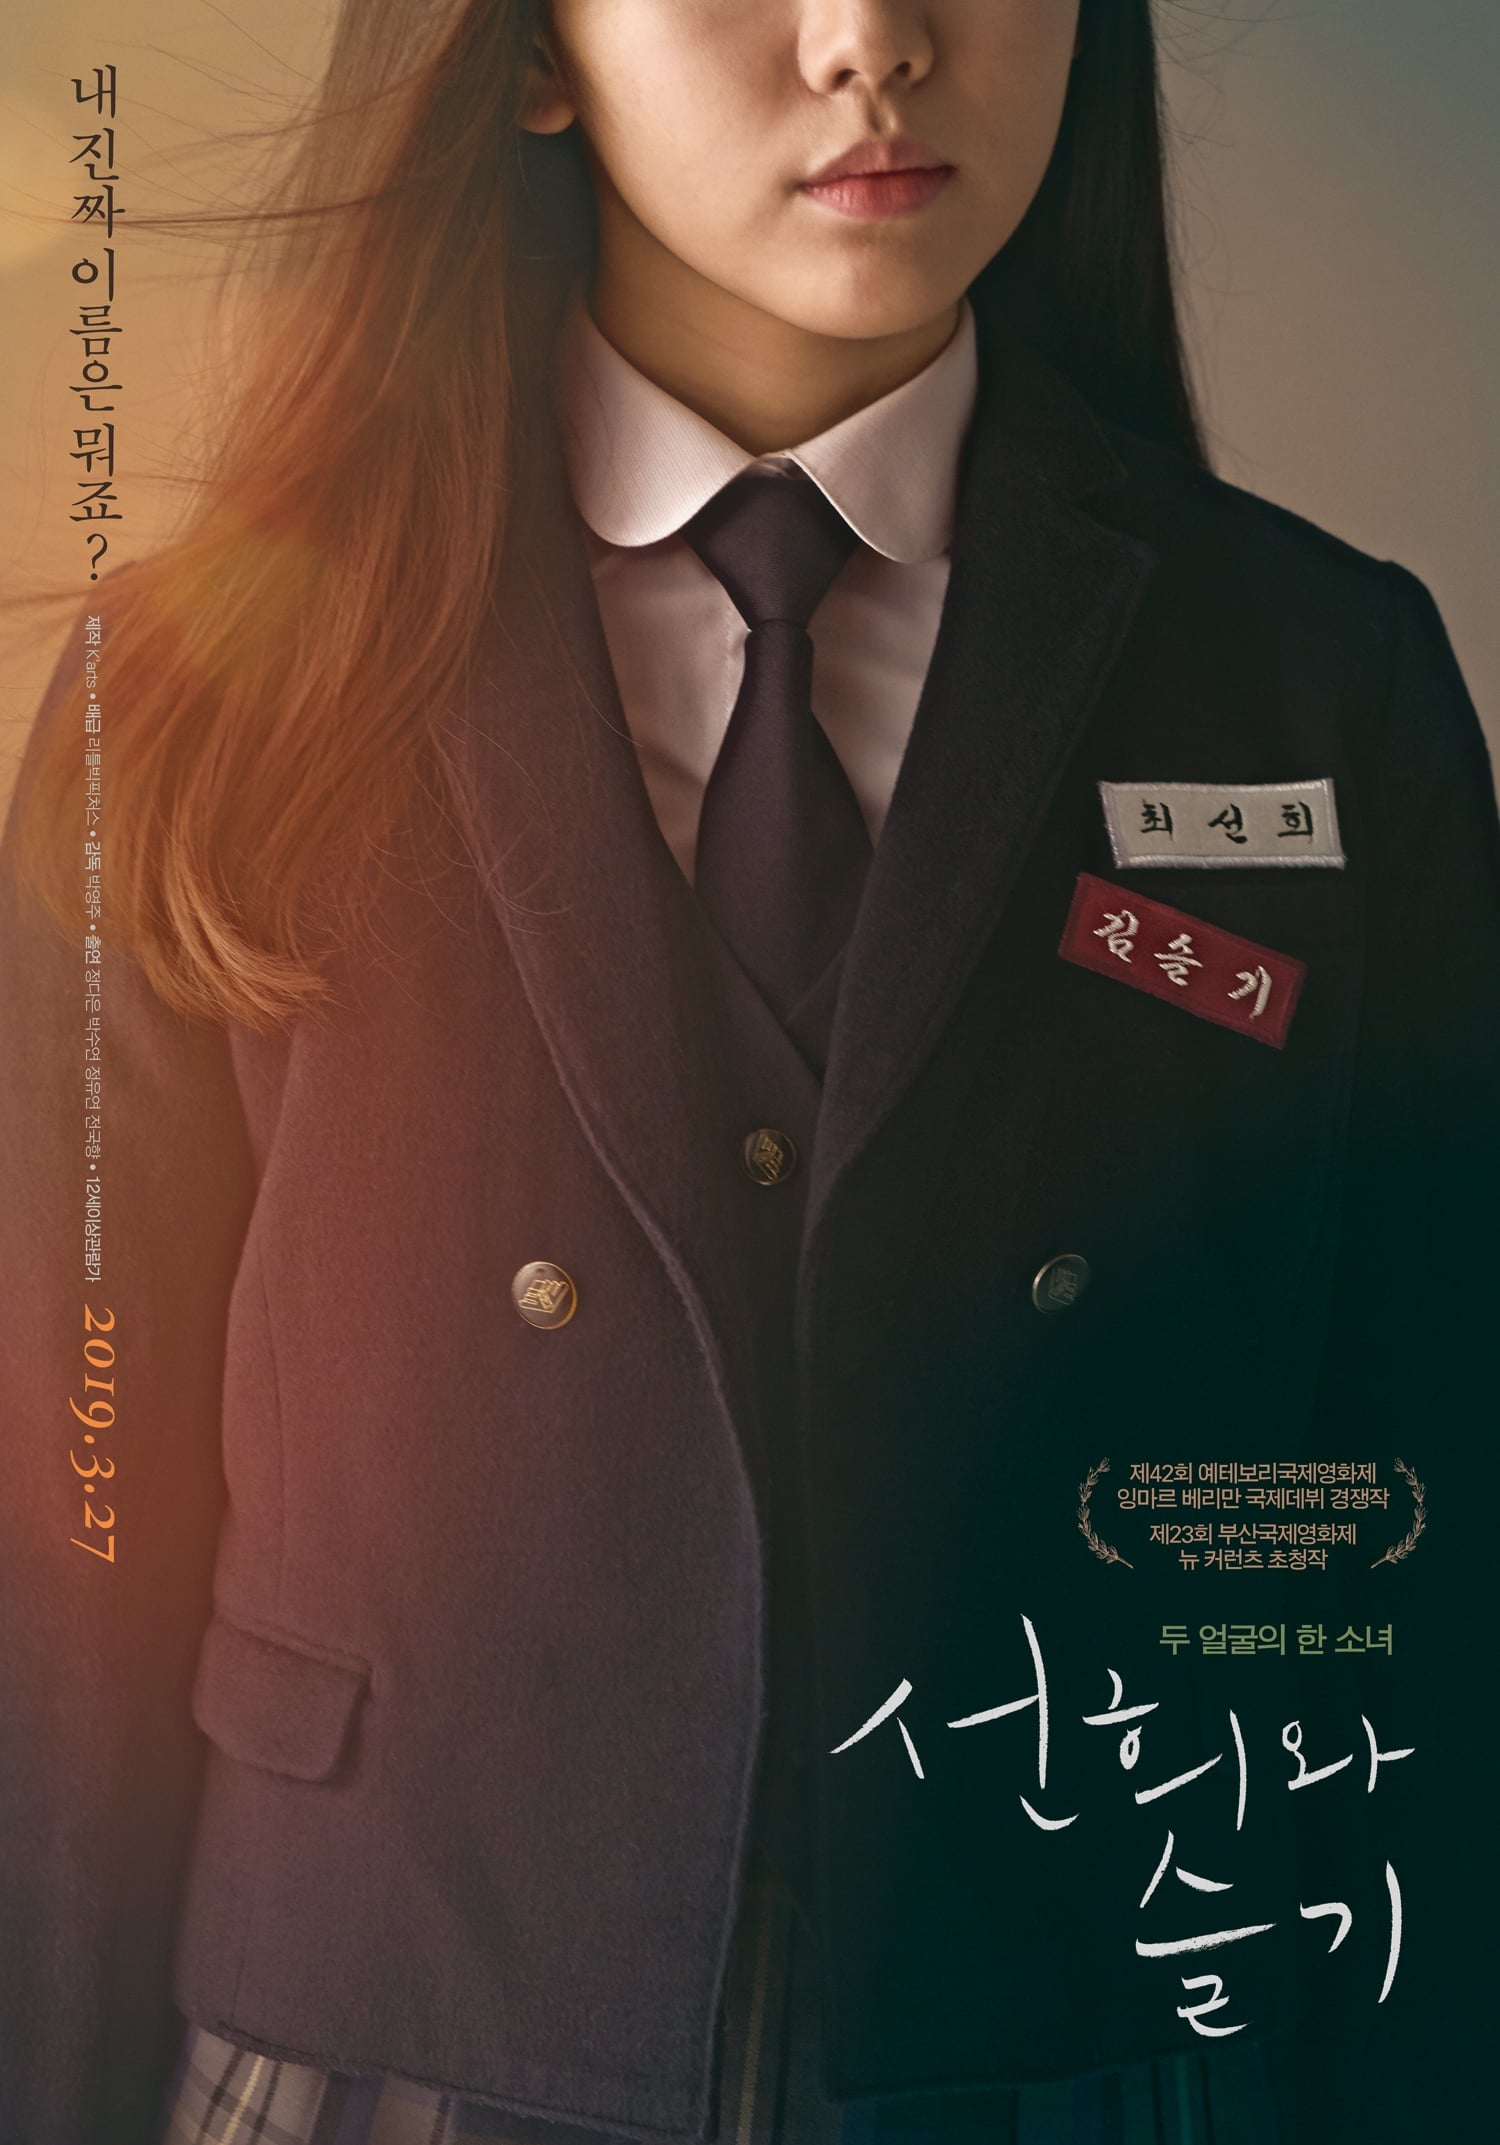 Read more about the article Second Life (2021) | Download Korean Movie